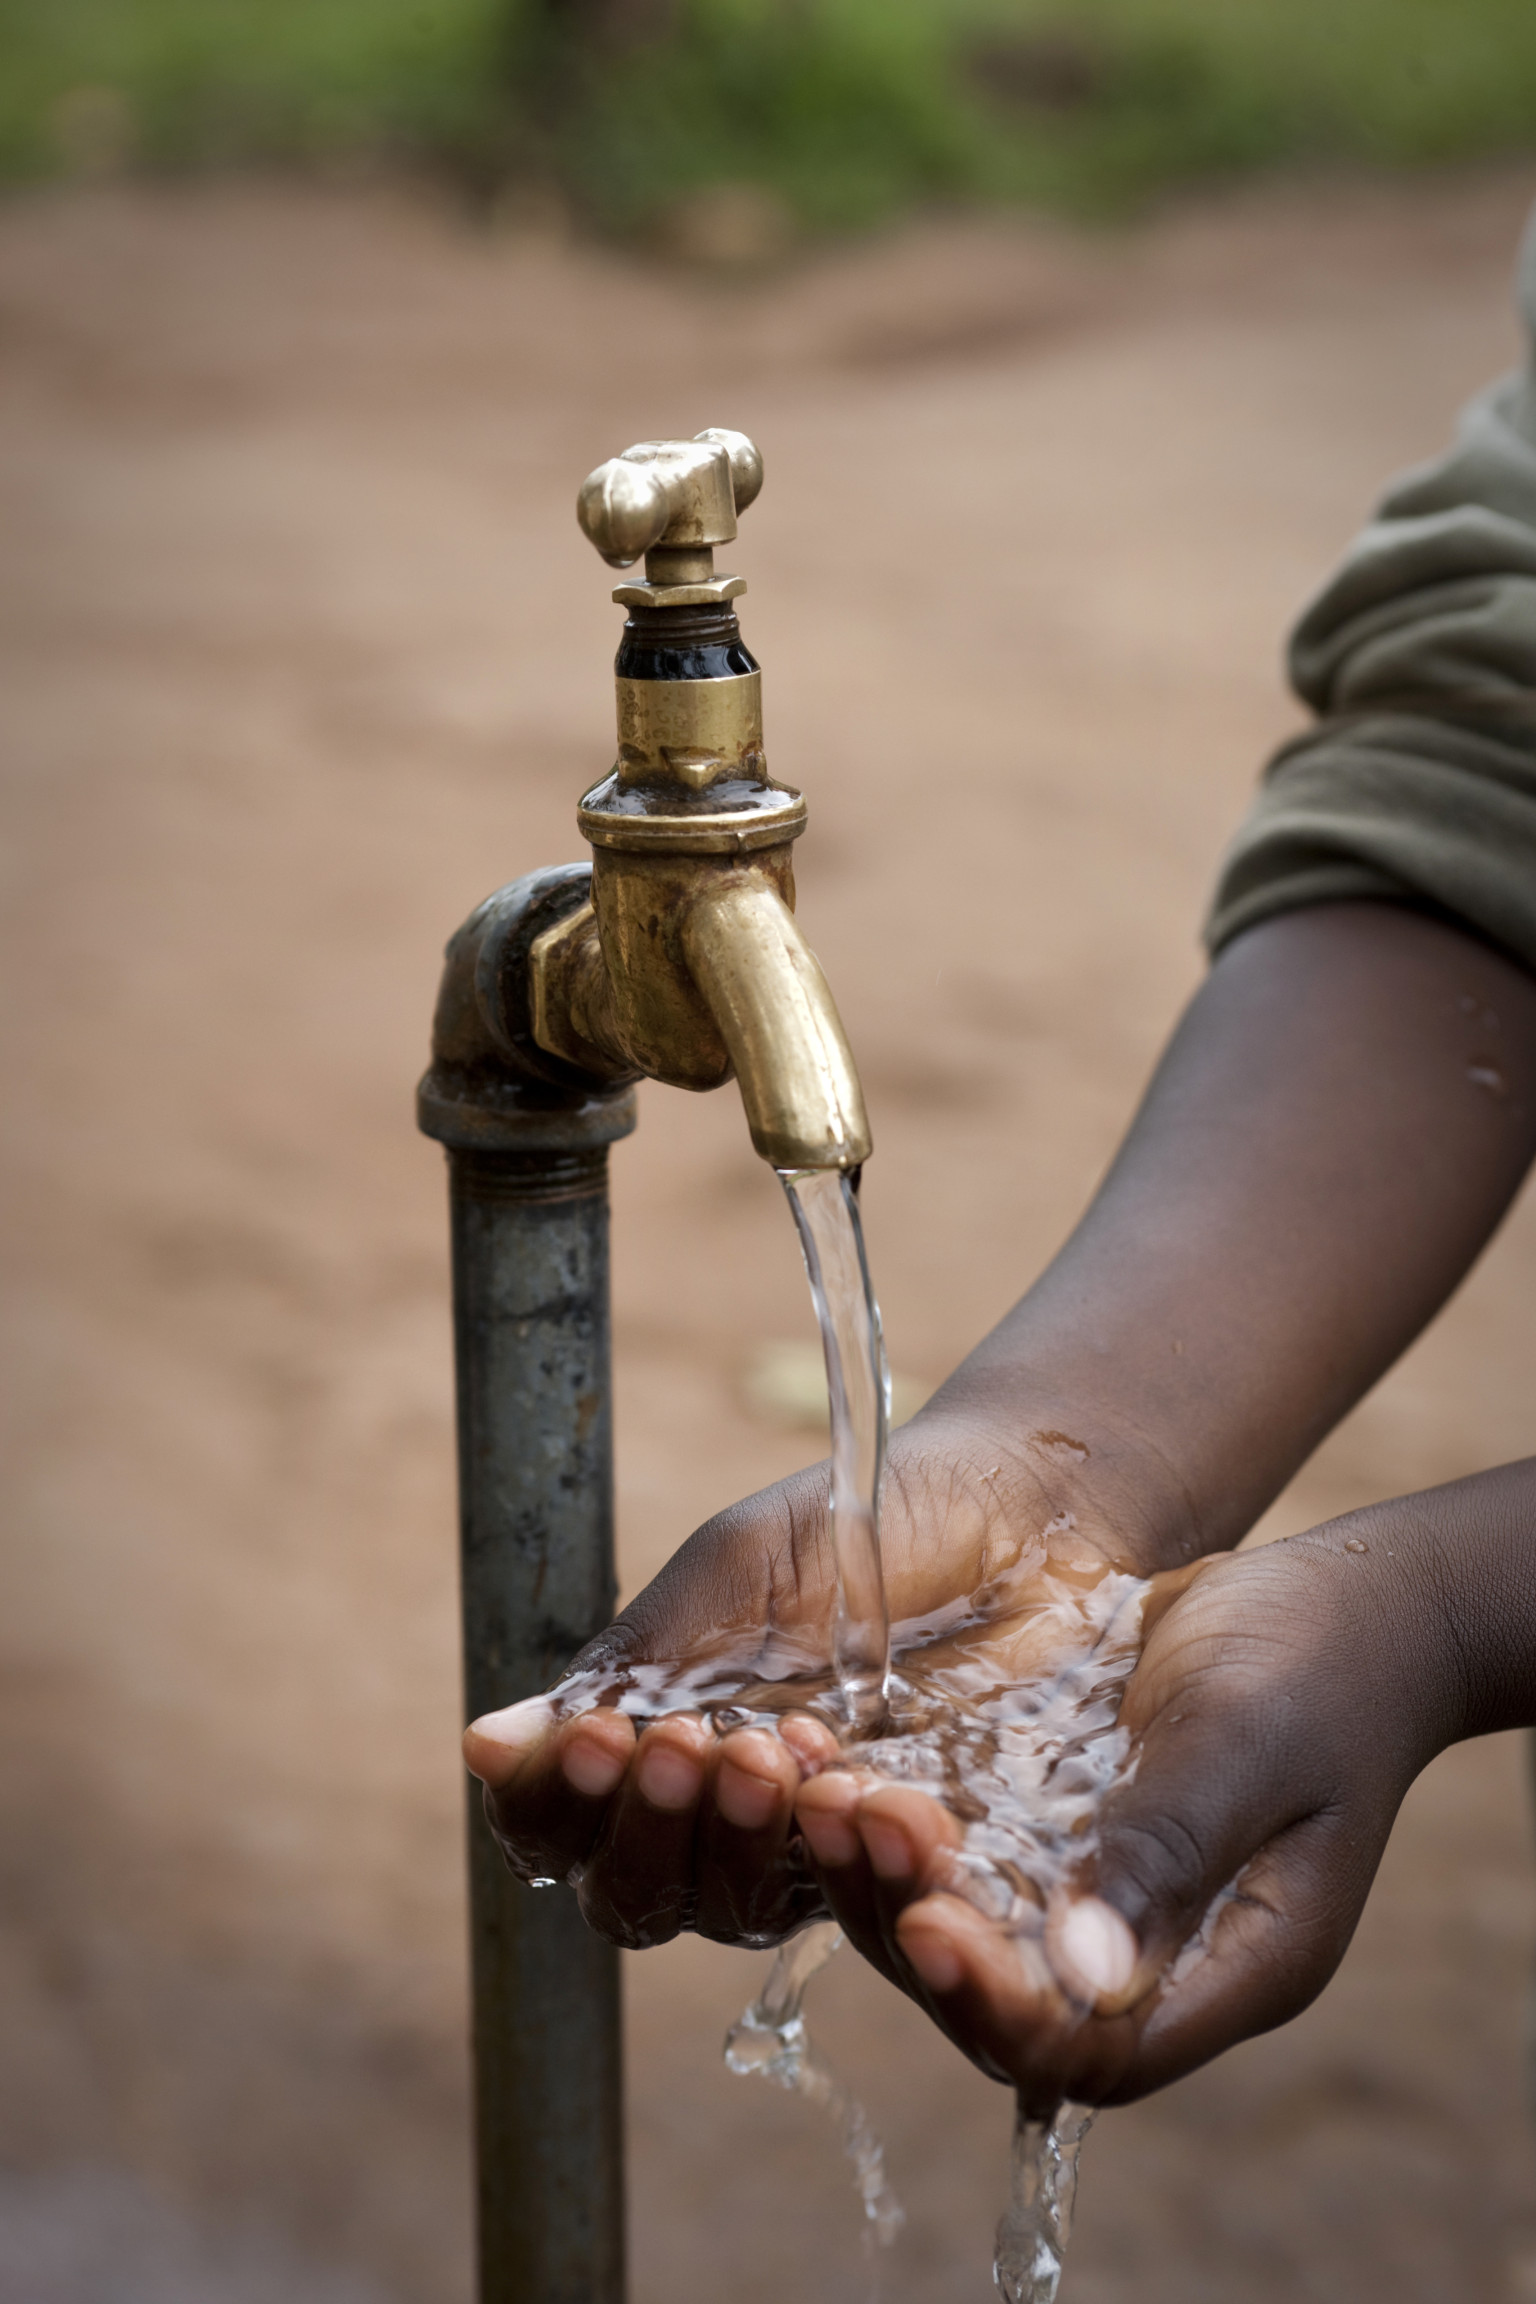 water and sanitation 25 billion people around the world do not have access to adequate sanitation read how water and sanitation help reduce poverty and disease.